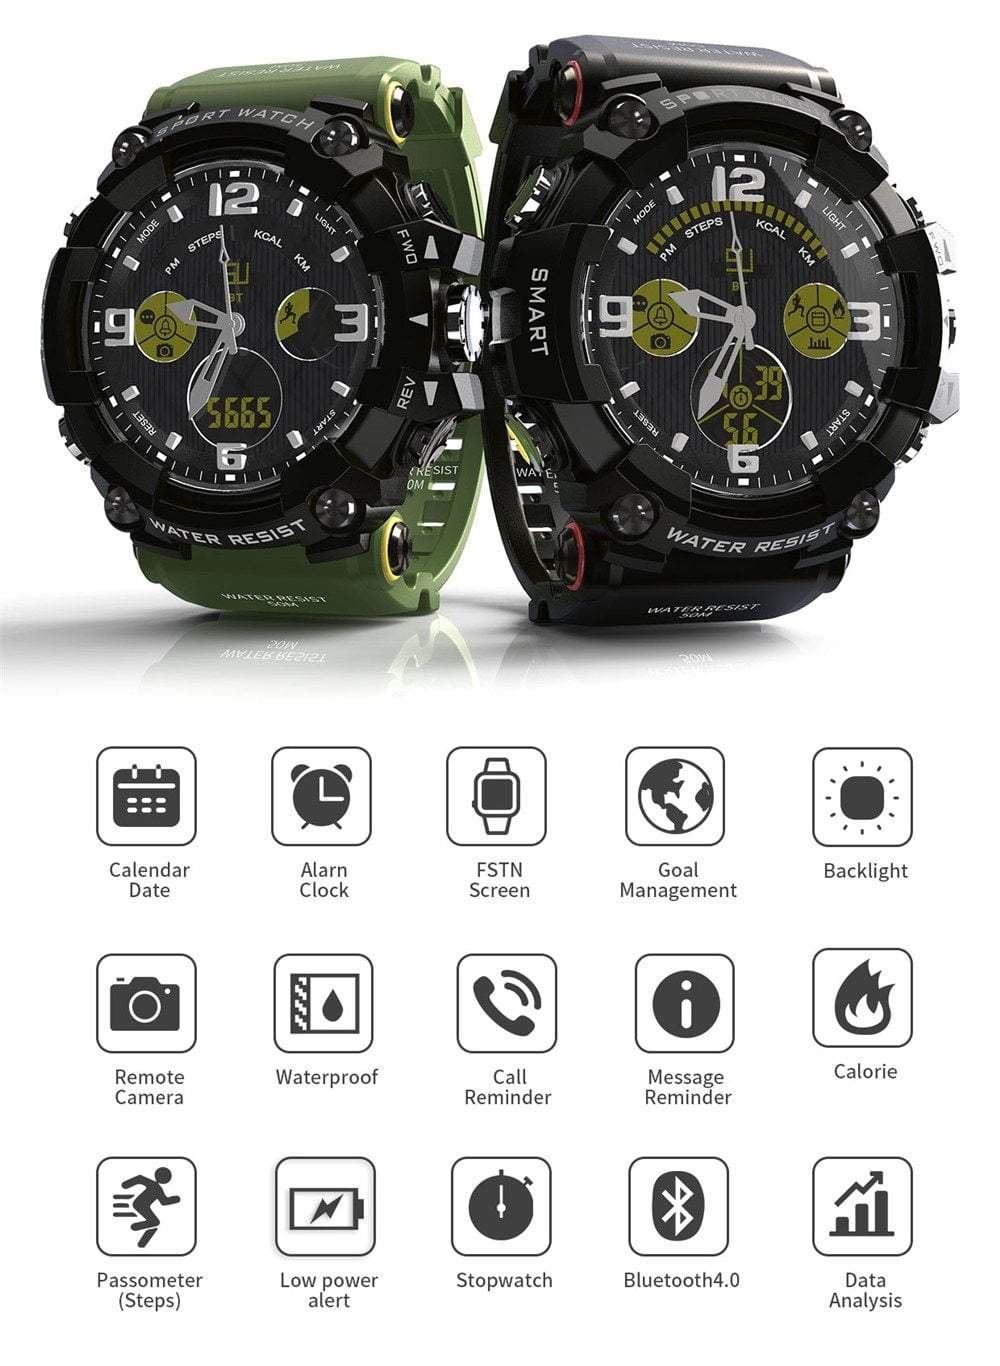 Tactical Smartwatch For Android & iOS With 1.58 Inch LCD Screen, Miulitary Watch - Dgitrends